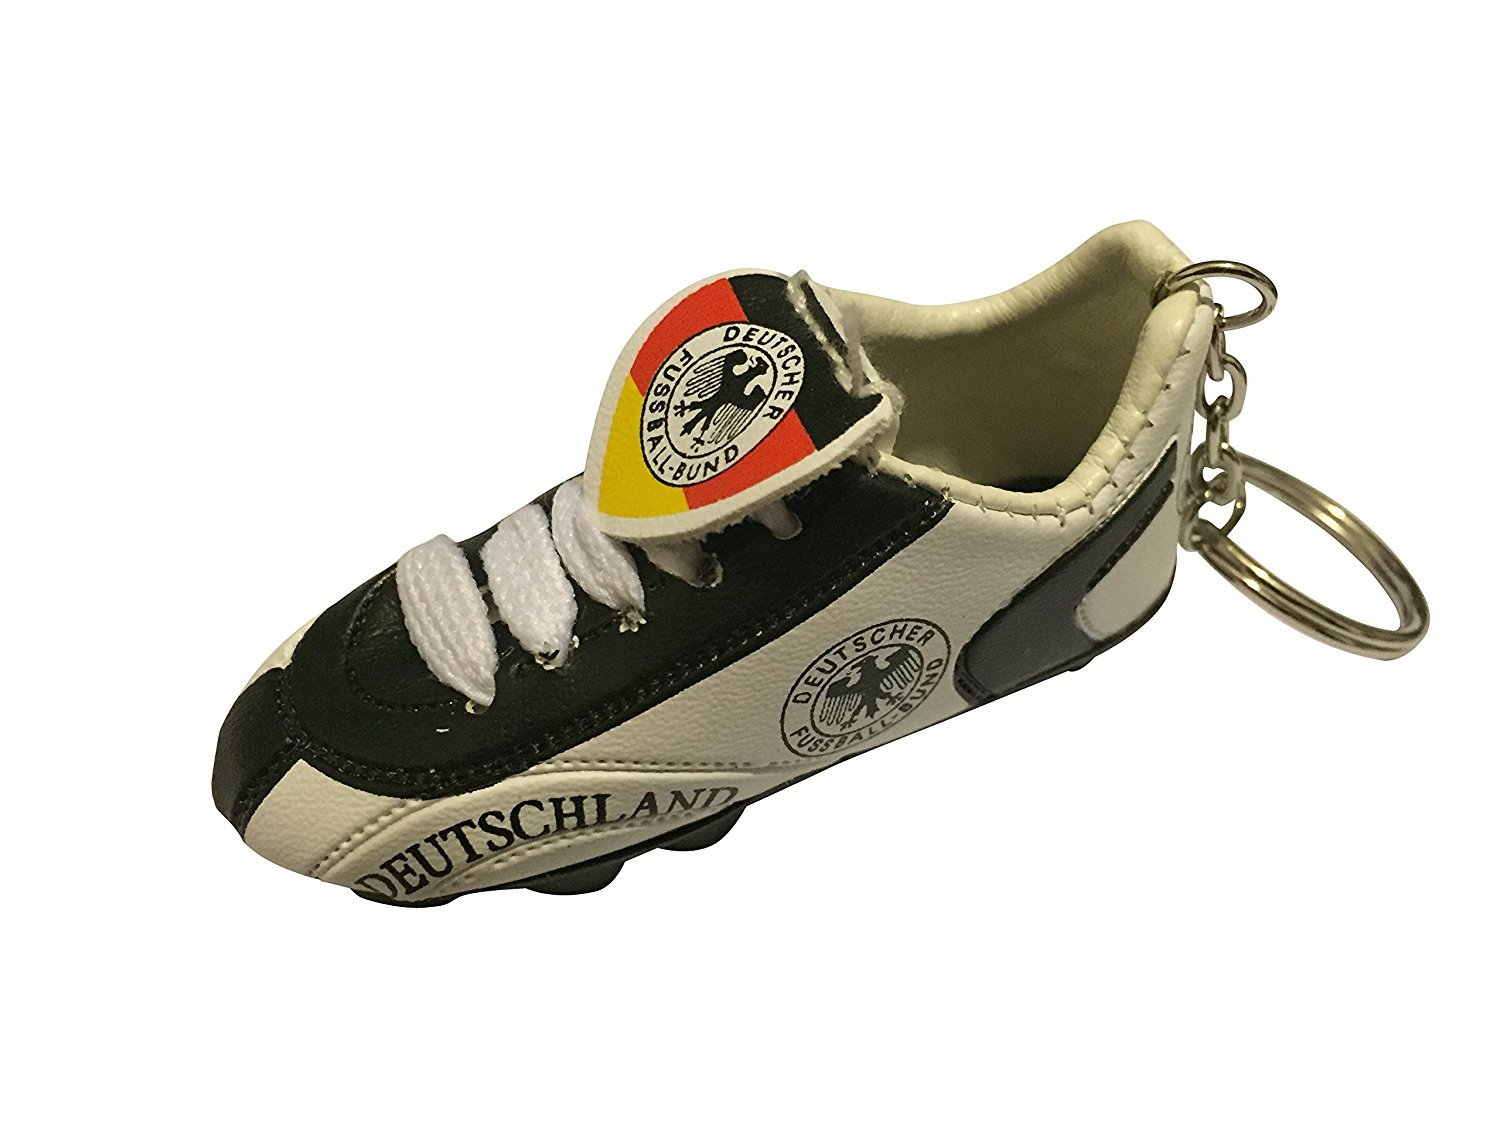 Football Soccer Futbol Mini Shoeキーチェーンキーリング – ヨーロッパ B01N3PDDTY 1-Pack Country: Germany Country: Germany 1-Pack